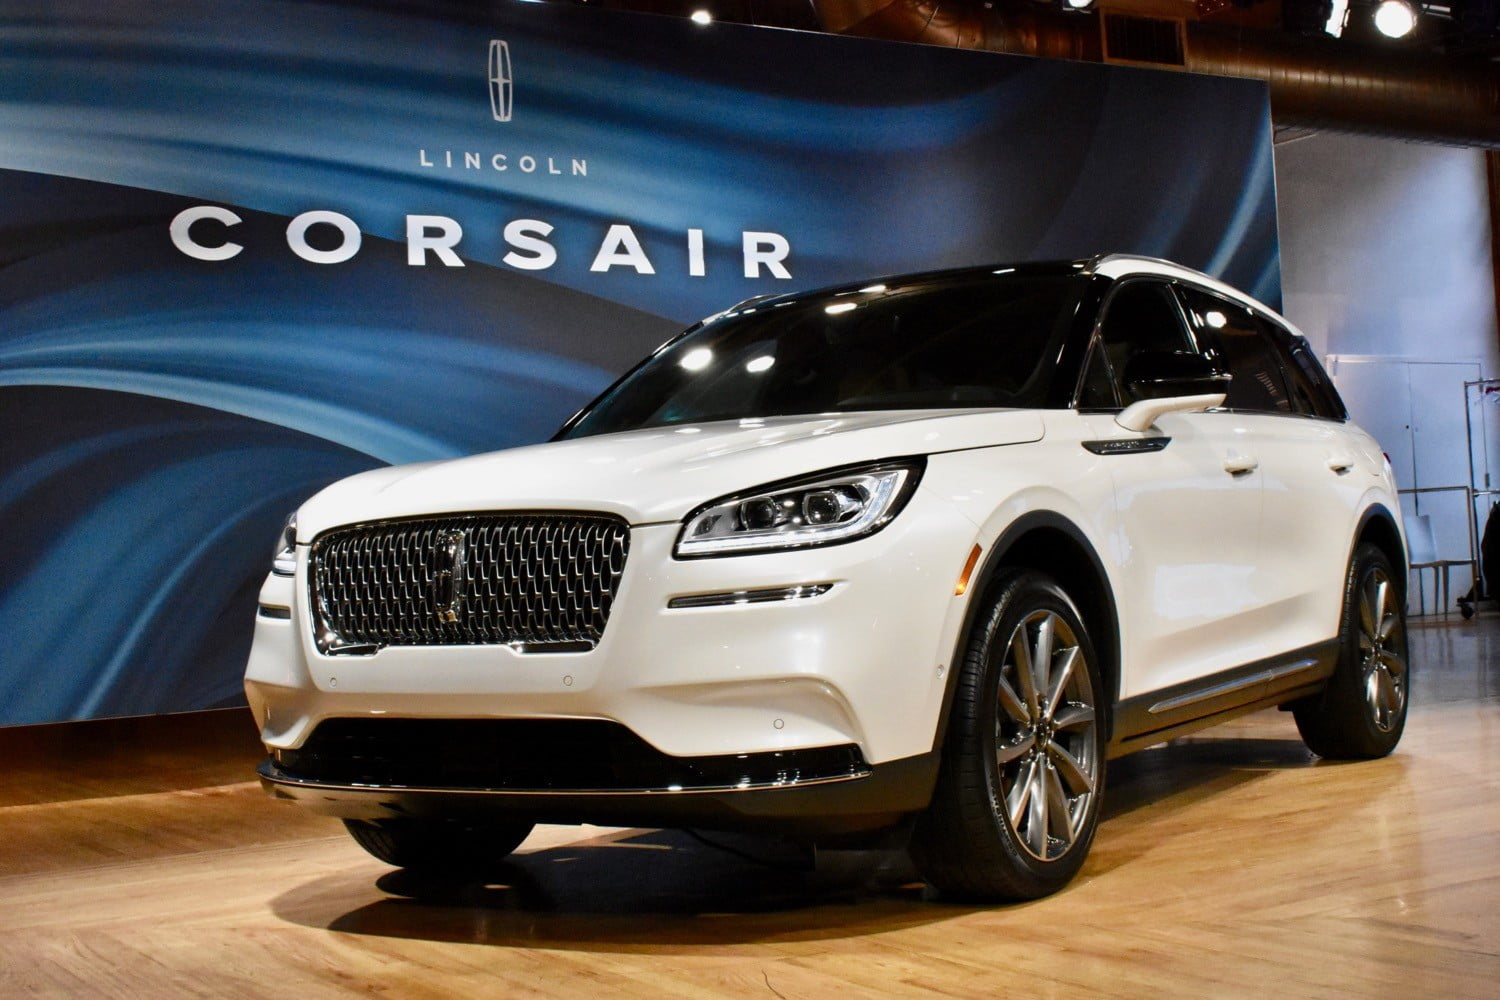 2020 Lincoln Corsair Small Suv To Debut At 2019 New York Auto Show